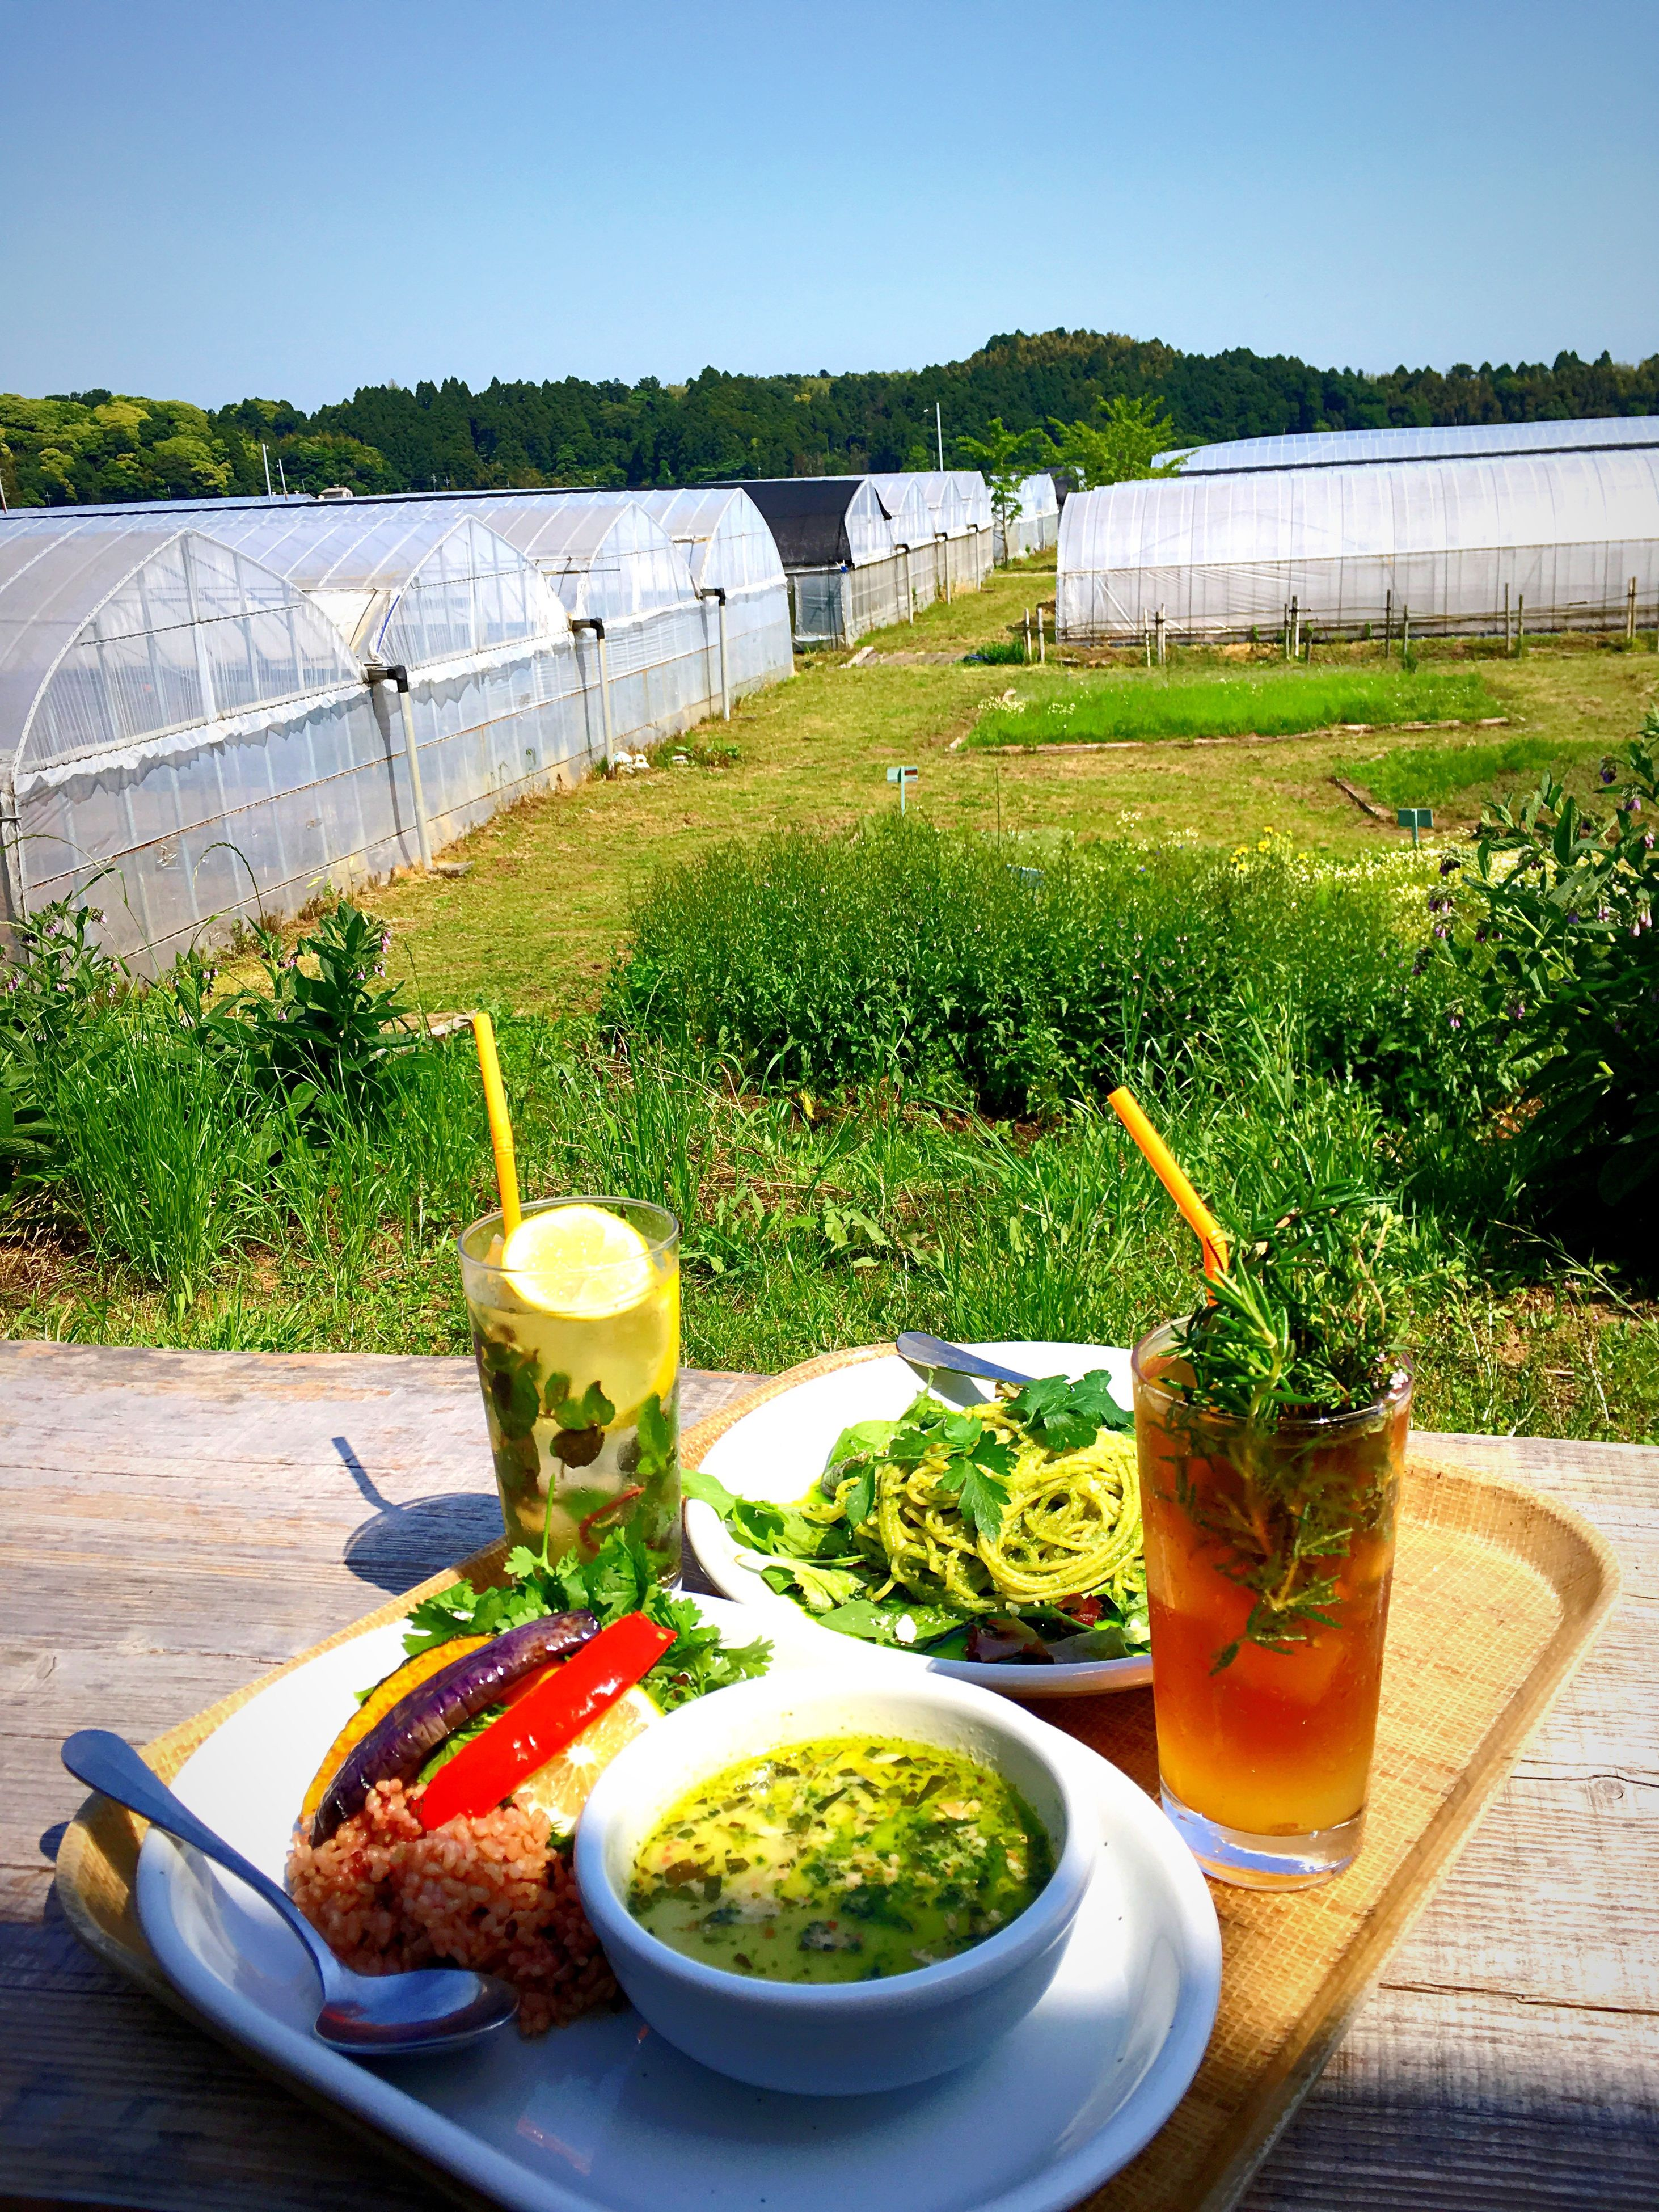 food and drink, drink, refreshment, freshness, food, alcohol, table, plant, beer, vegetable, healthy eating, plate, no people, day, outdoors, growth, drinking glass, green color, grass, lettuce, nature, greenhouse, ready-to-eat